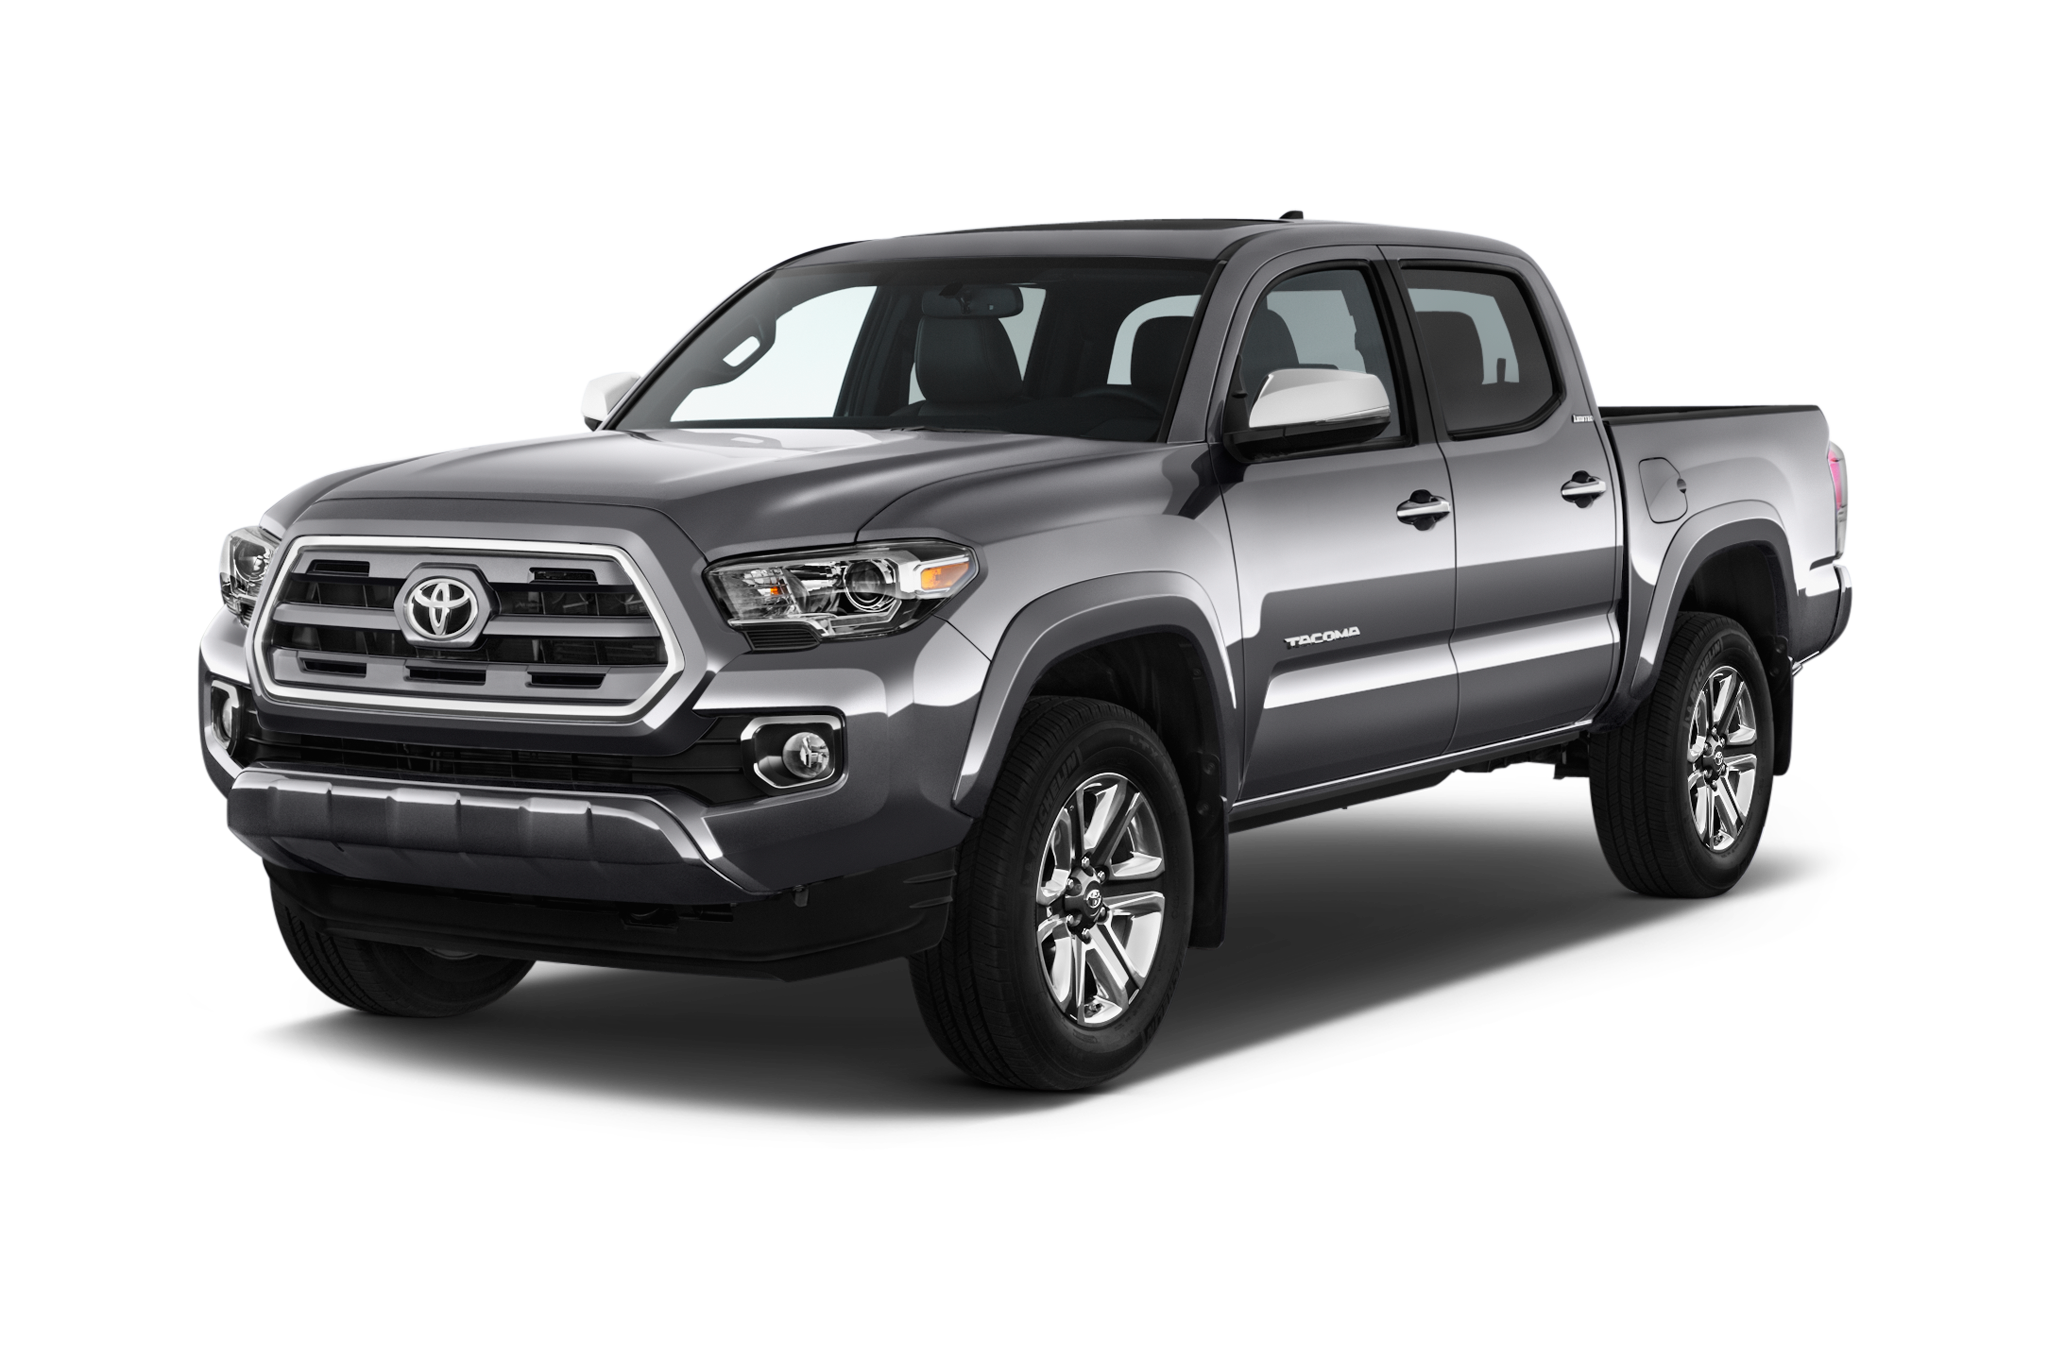 2016 toyota tacoma overview msn autos. Black Bedroom Furniture Sets. Home Design Ideas